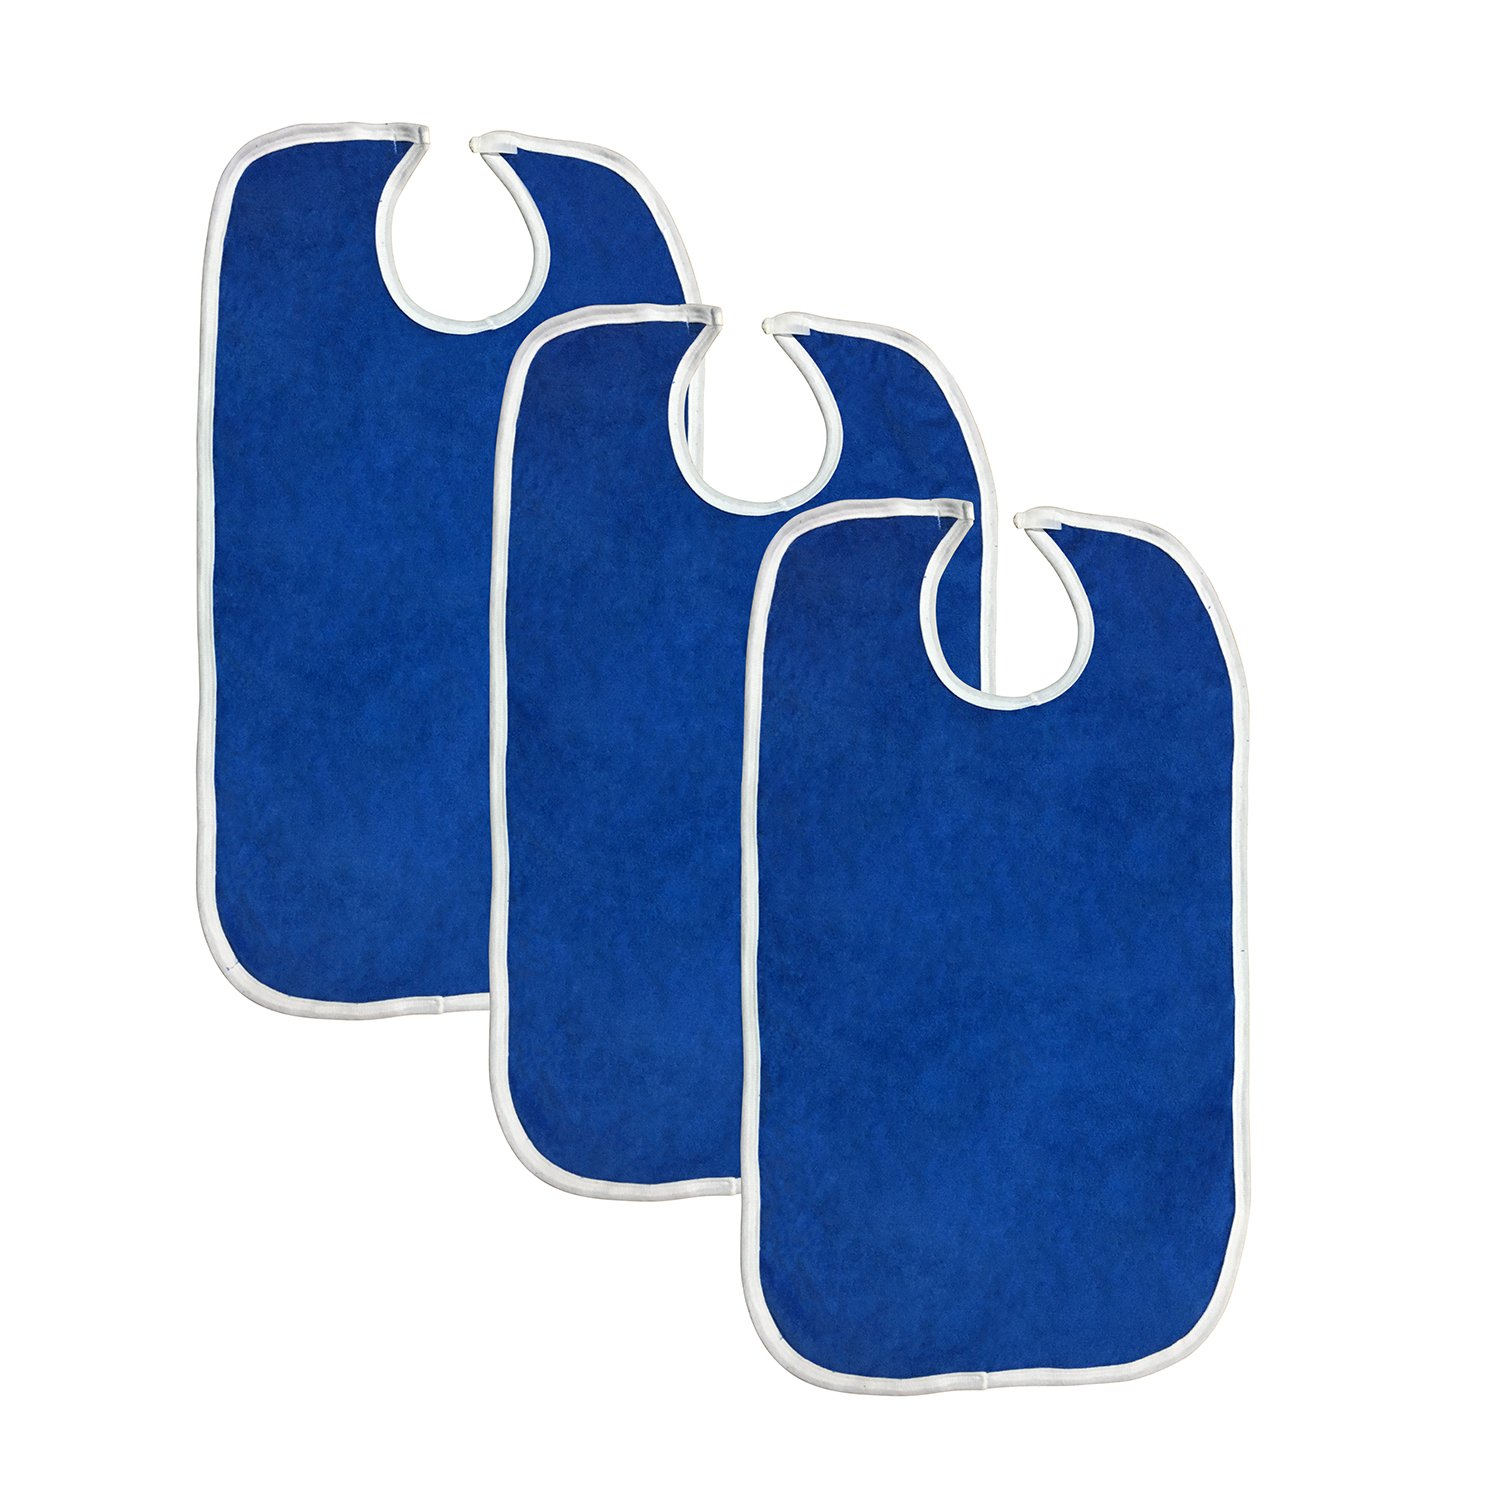 Terry Adult Reusable Bibs with Velcro Closure, 18'' x 30'', Double Ply Knit, Extra Absorbent and Washable, Royal Blue, Pack of 3